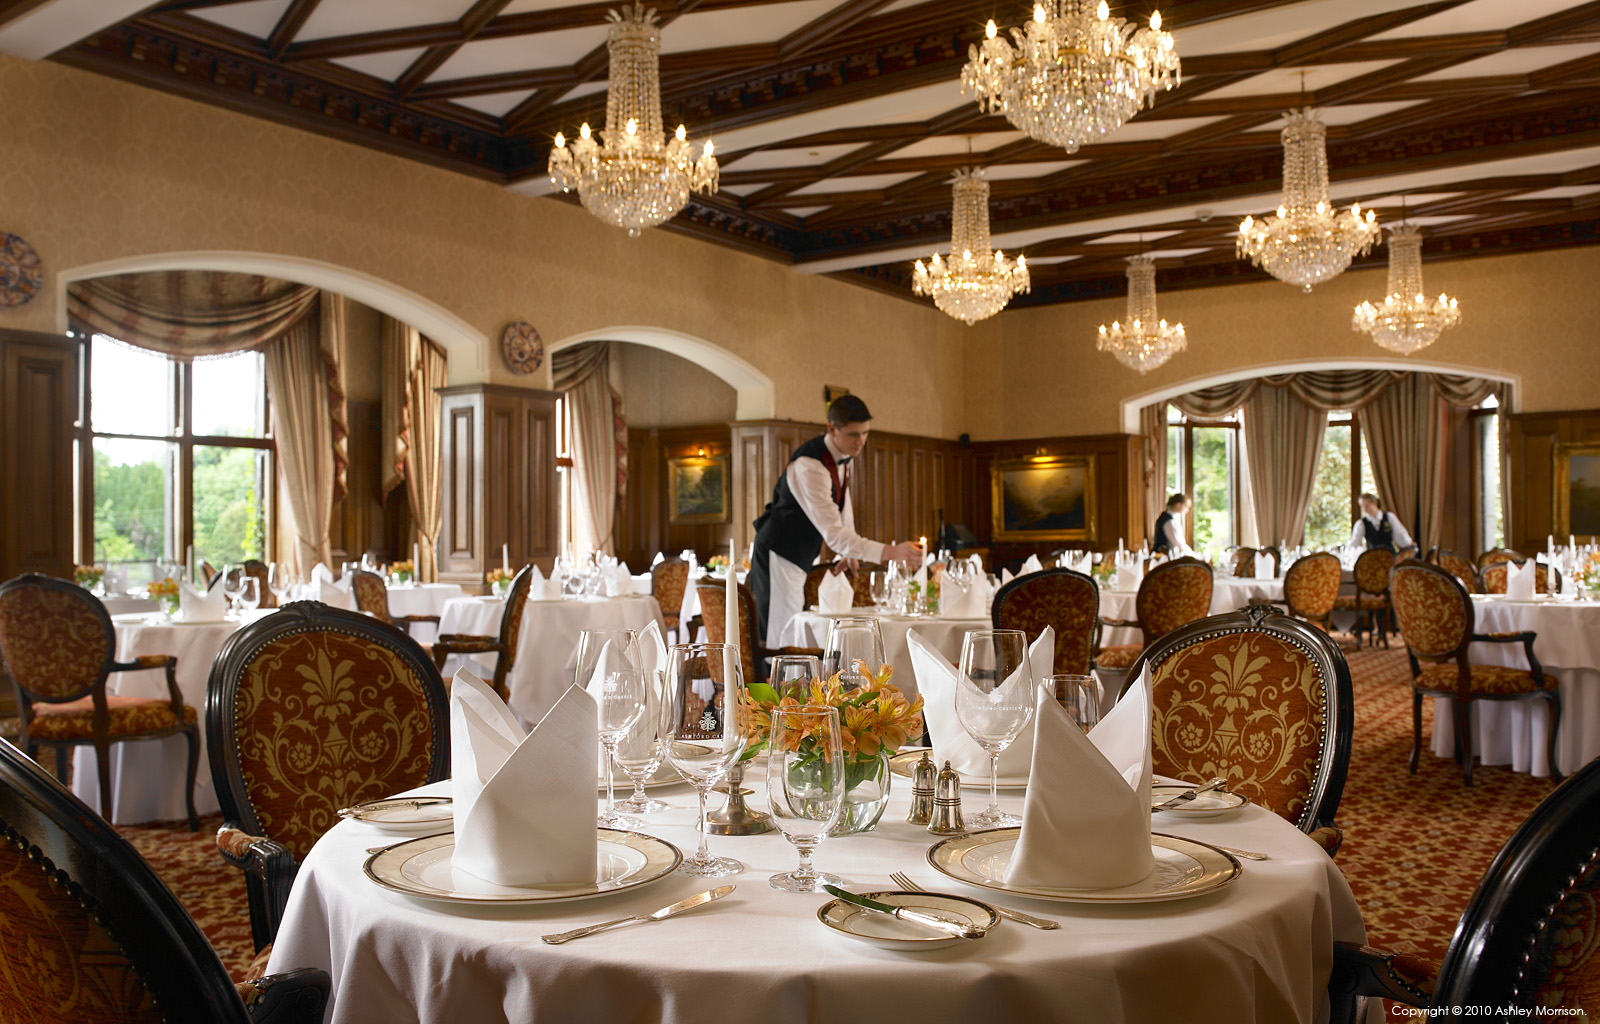 the george v dining room at ashford castle near the